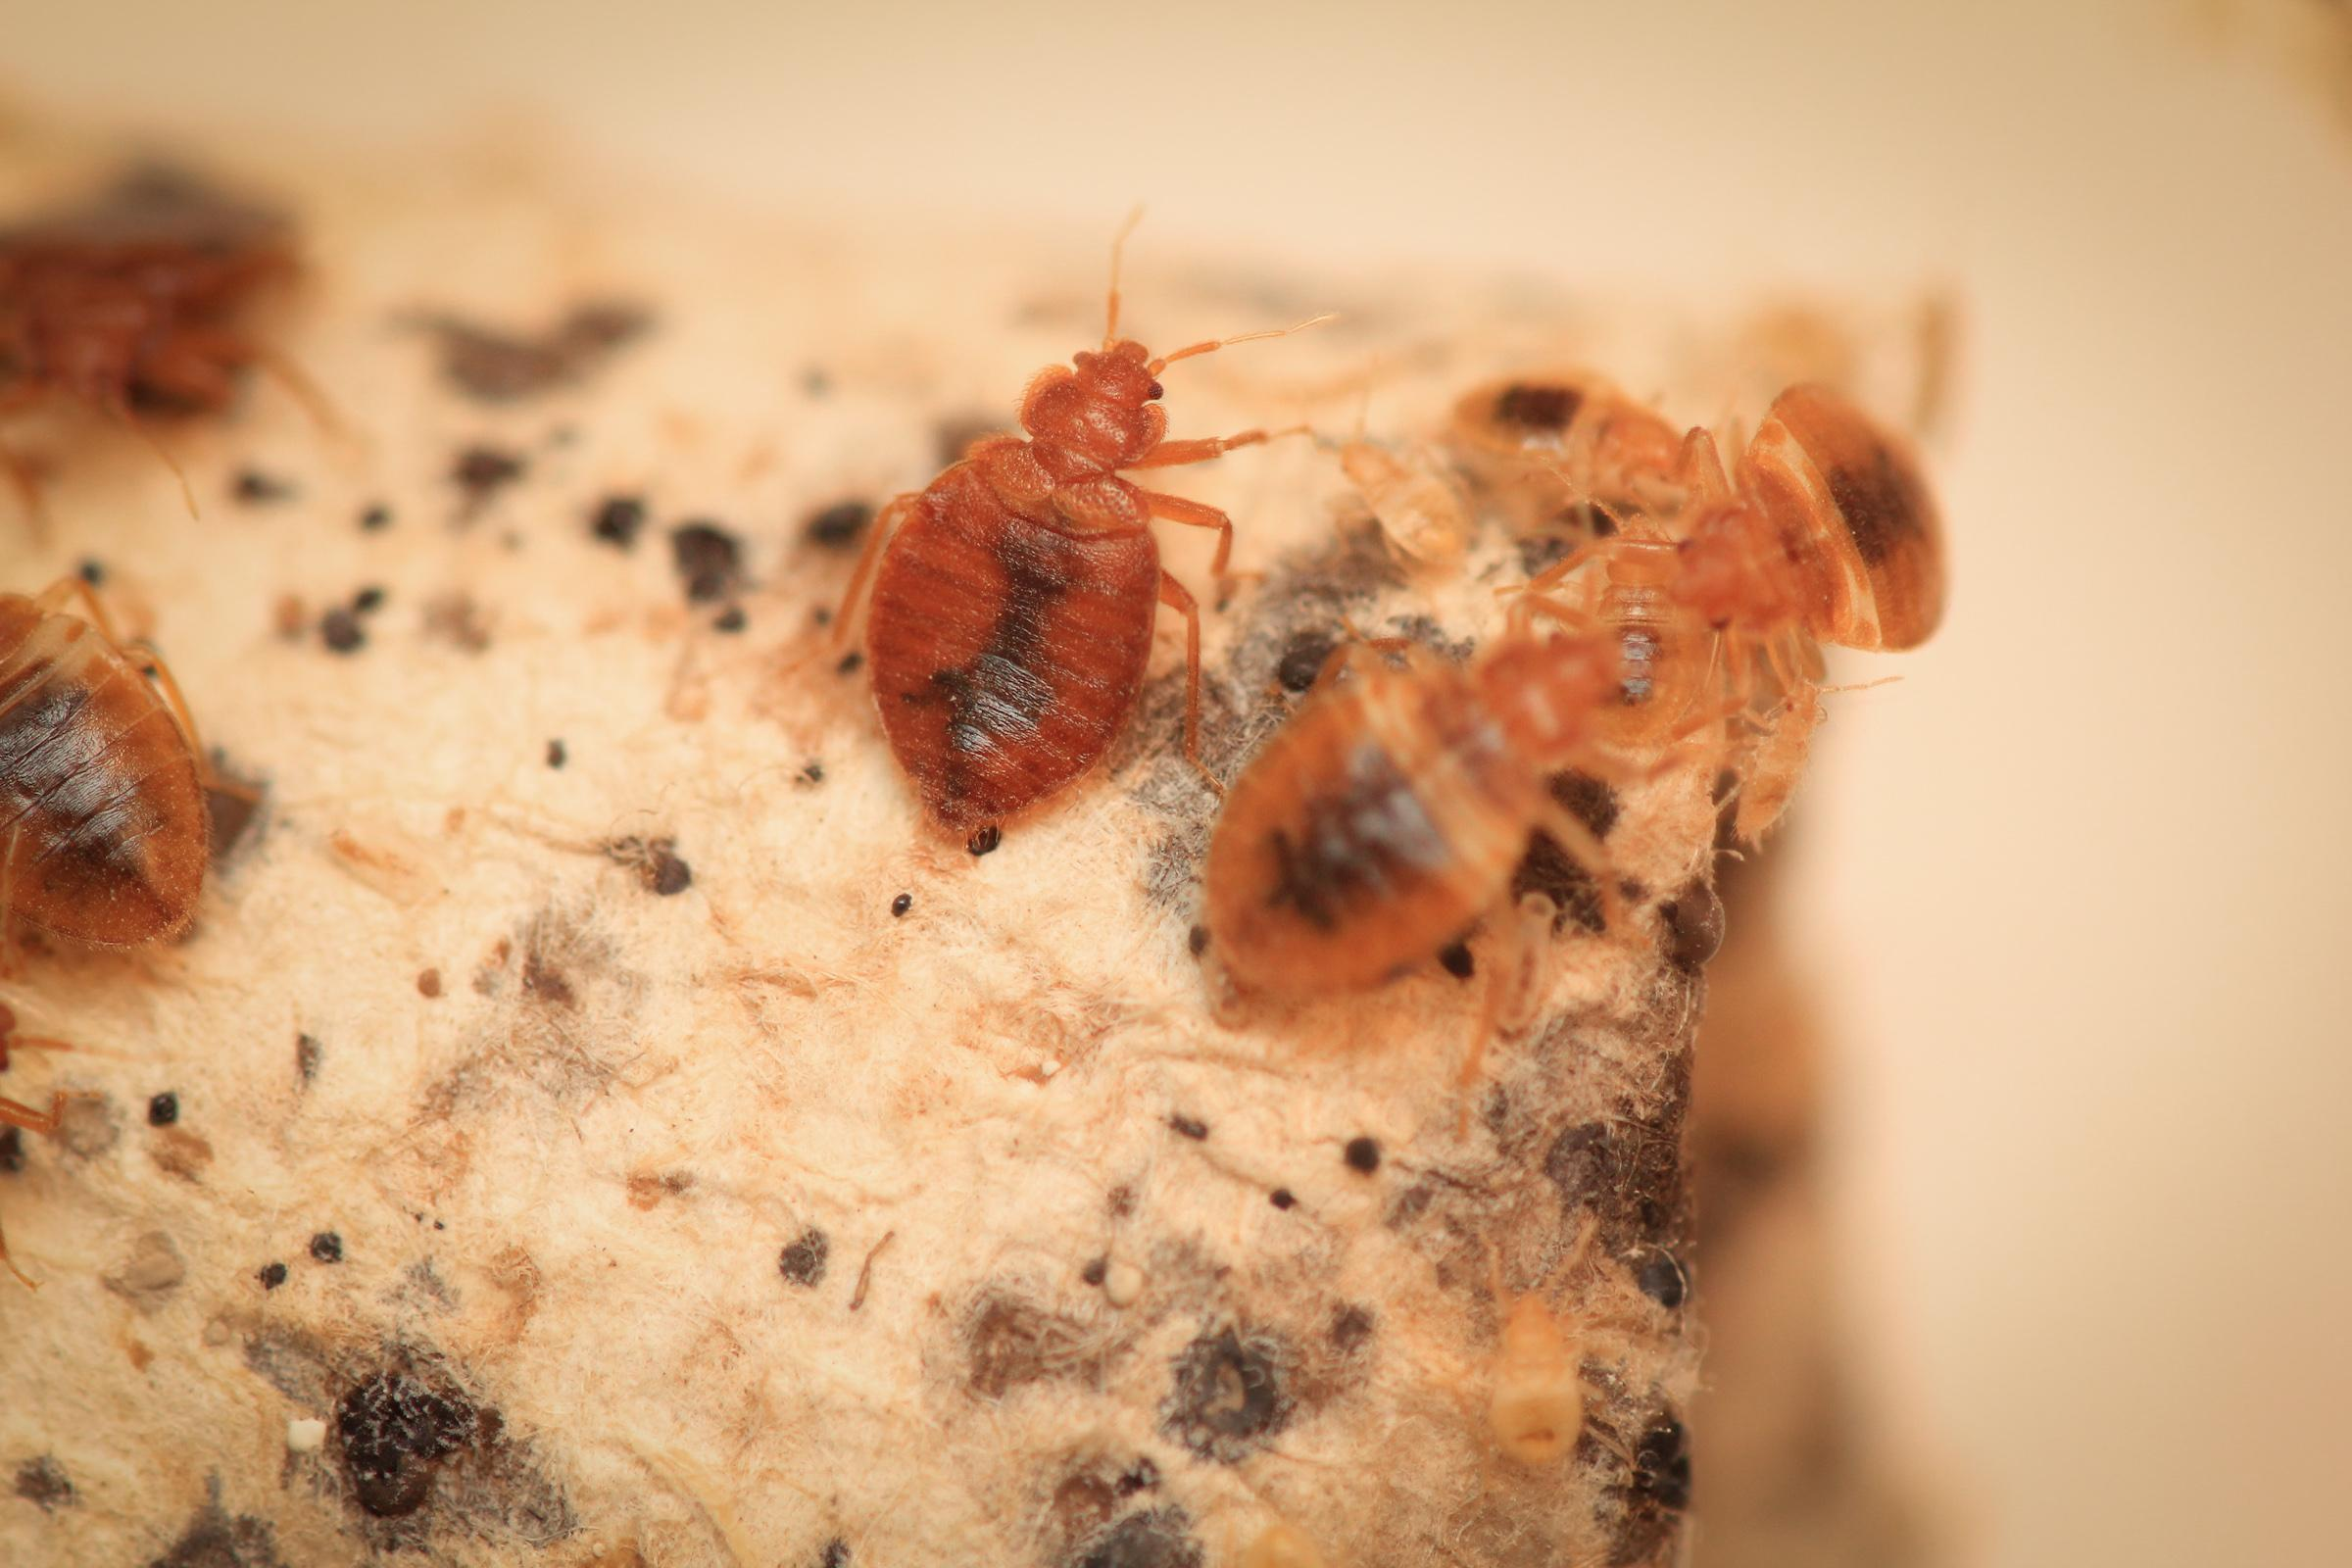 How To Contain Bed Bugs